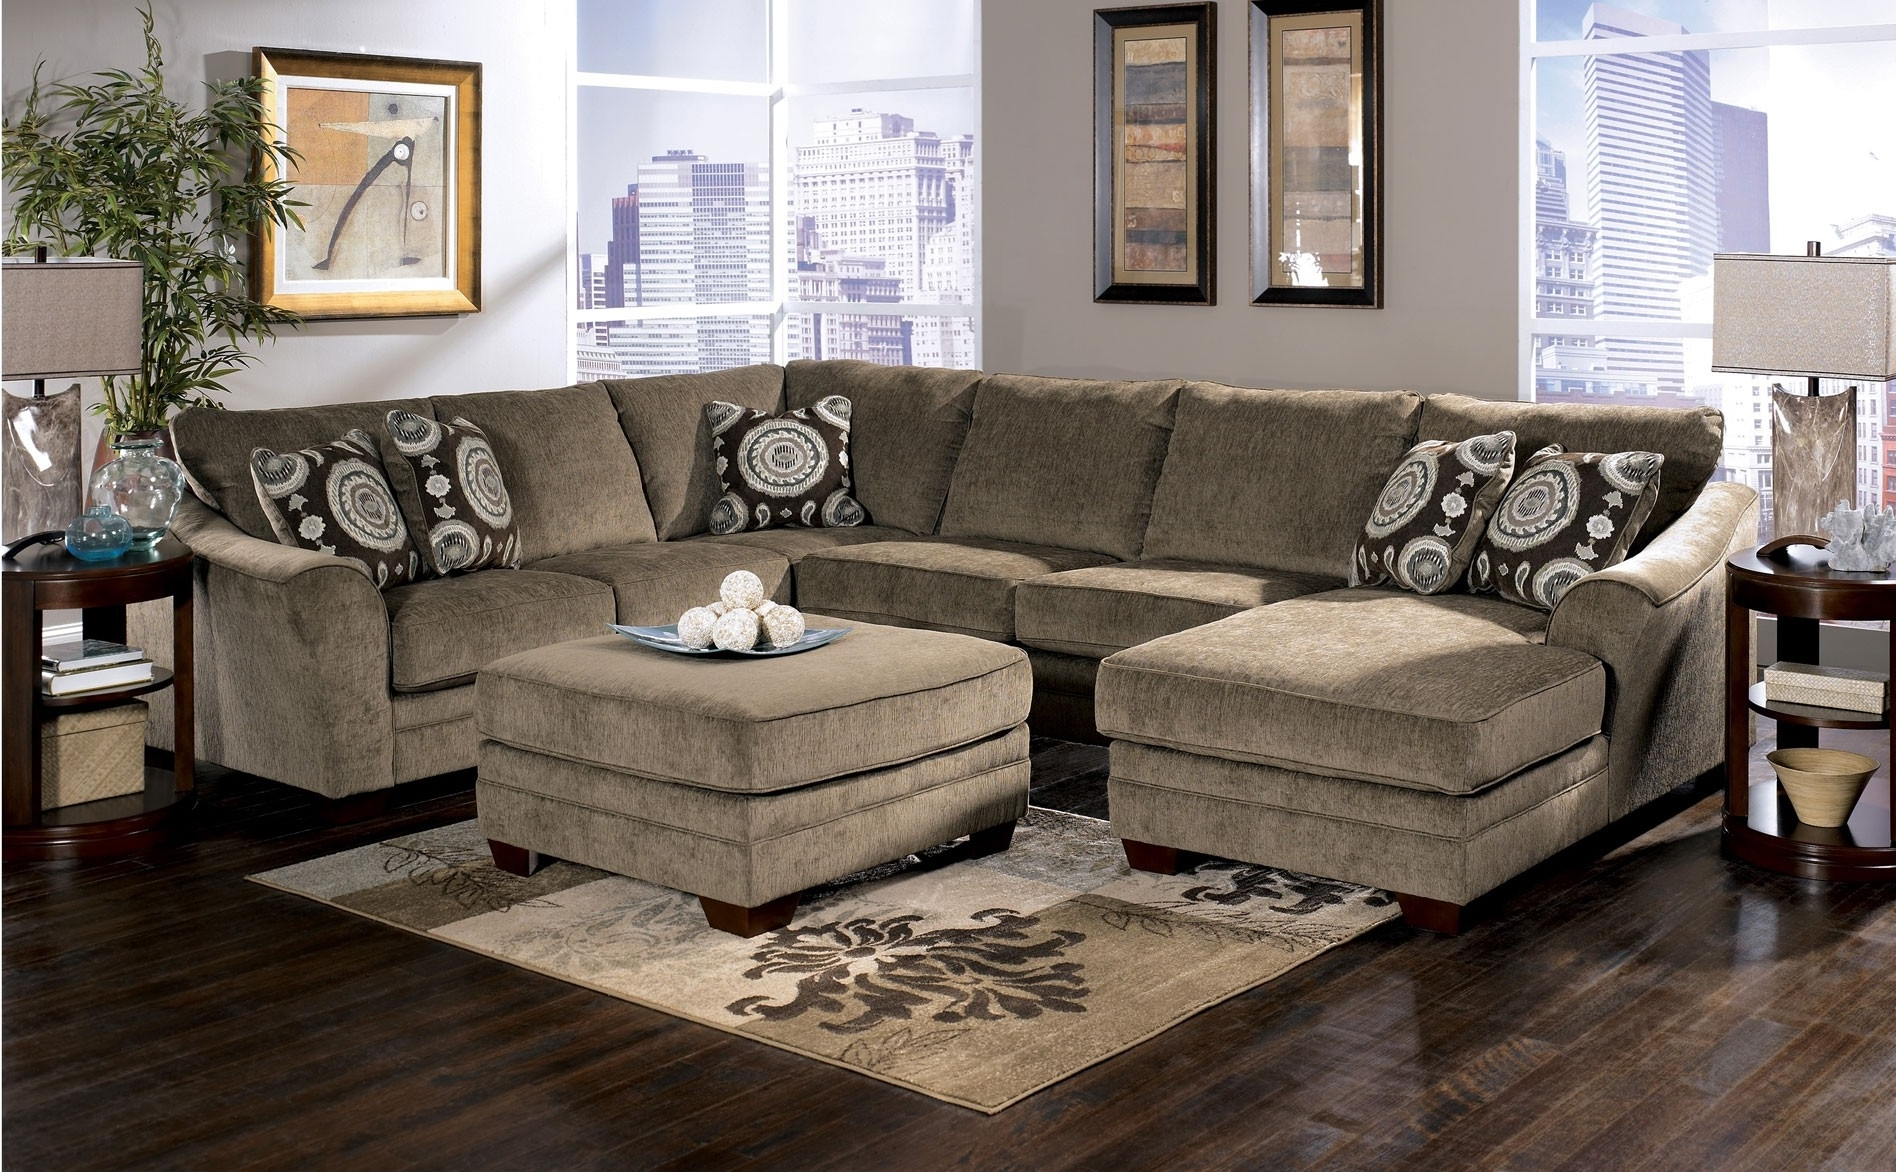 Sectional Sofas With Chaise Lounge And Ottoman With Latest Best Black Fabric Sectional Sofas Images – Liltigertoo (View 17 of 20)